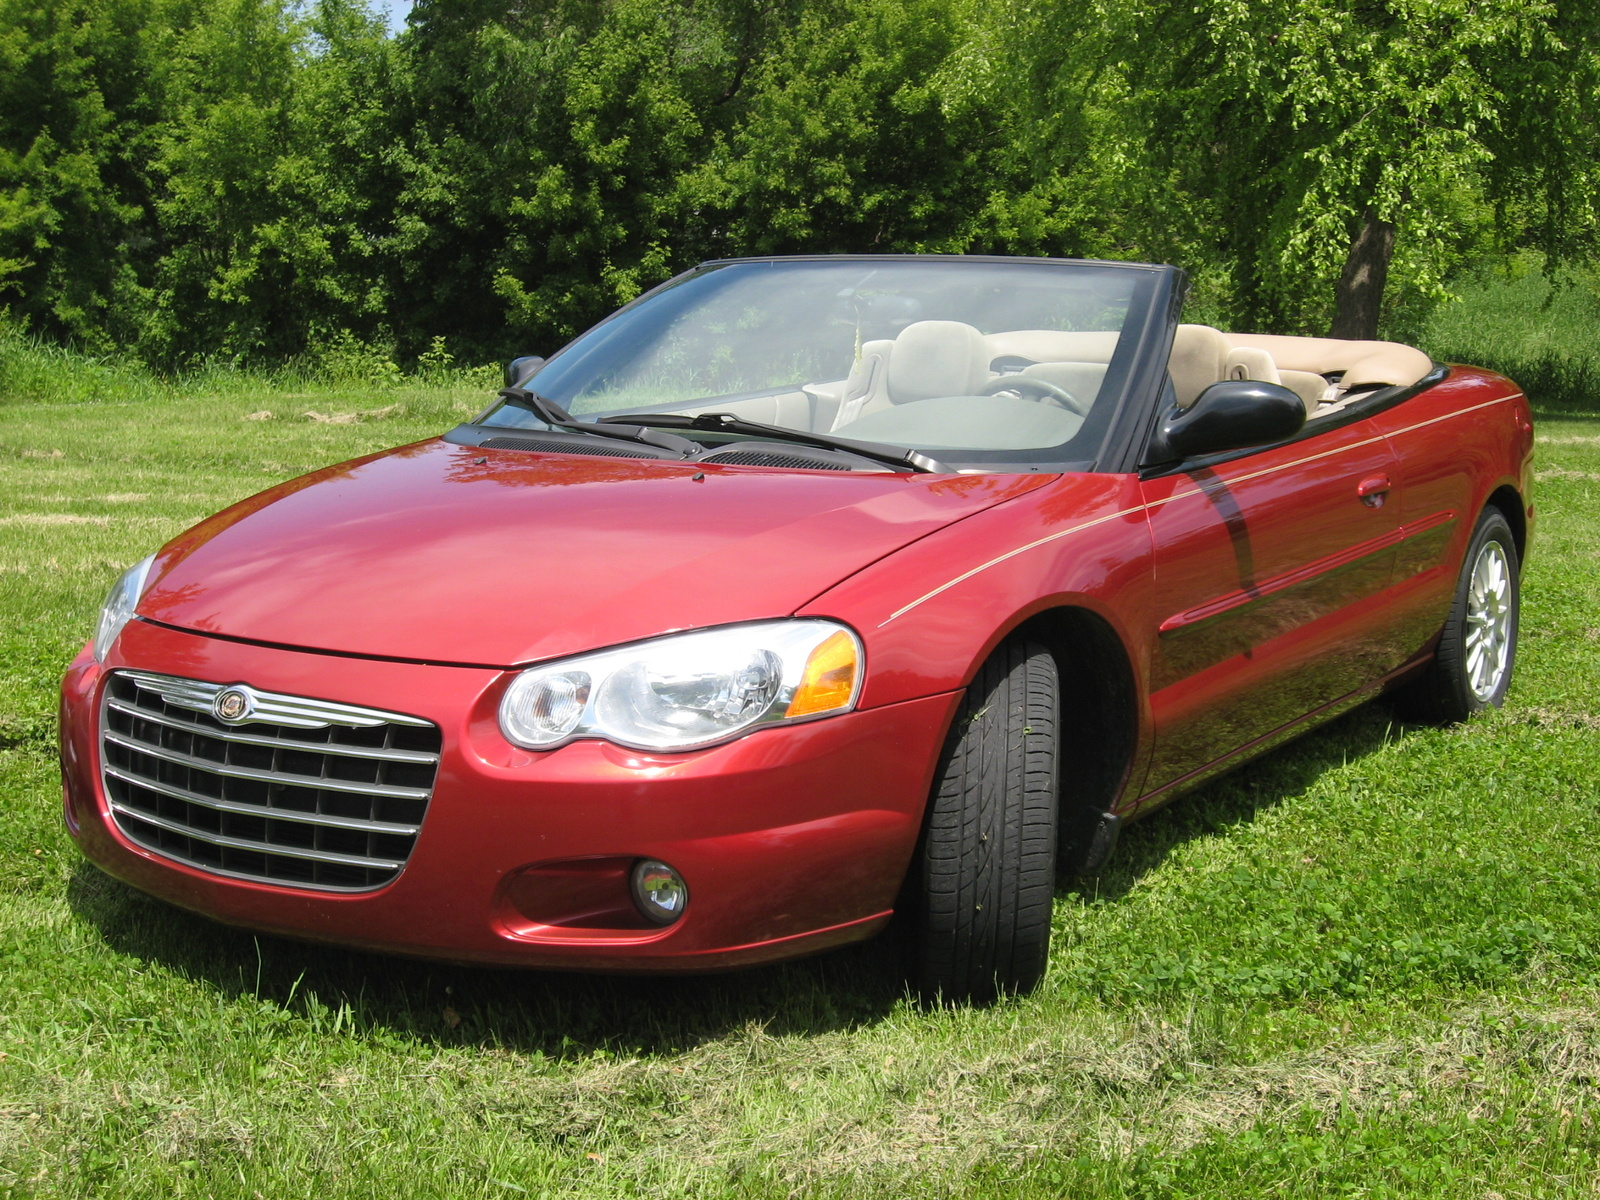 2004 Chrysler Sebring Touring Convertible picture